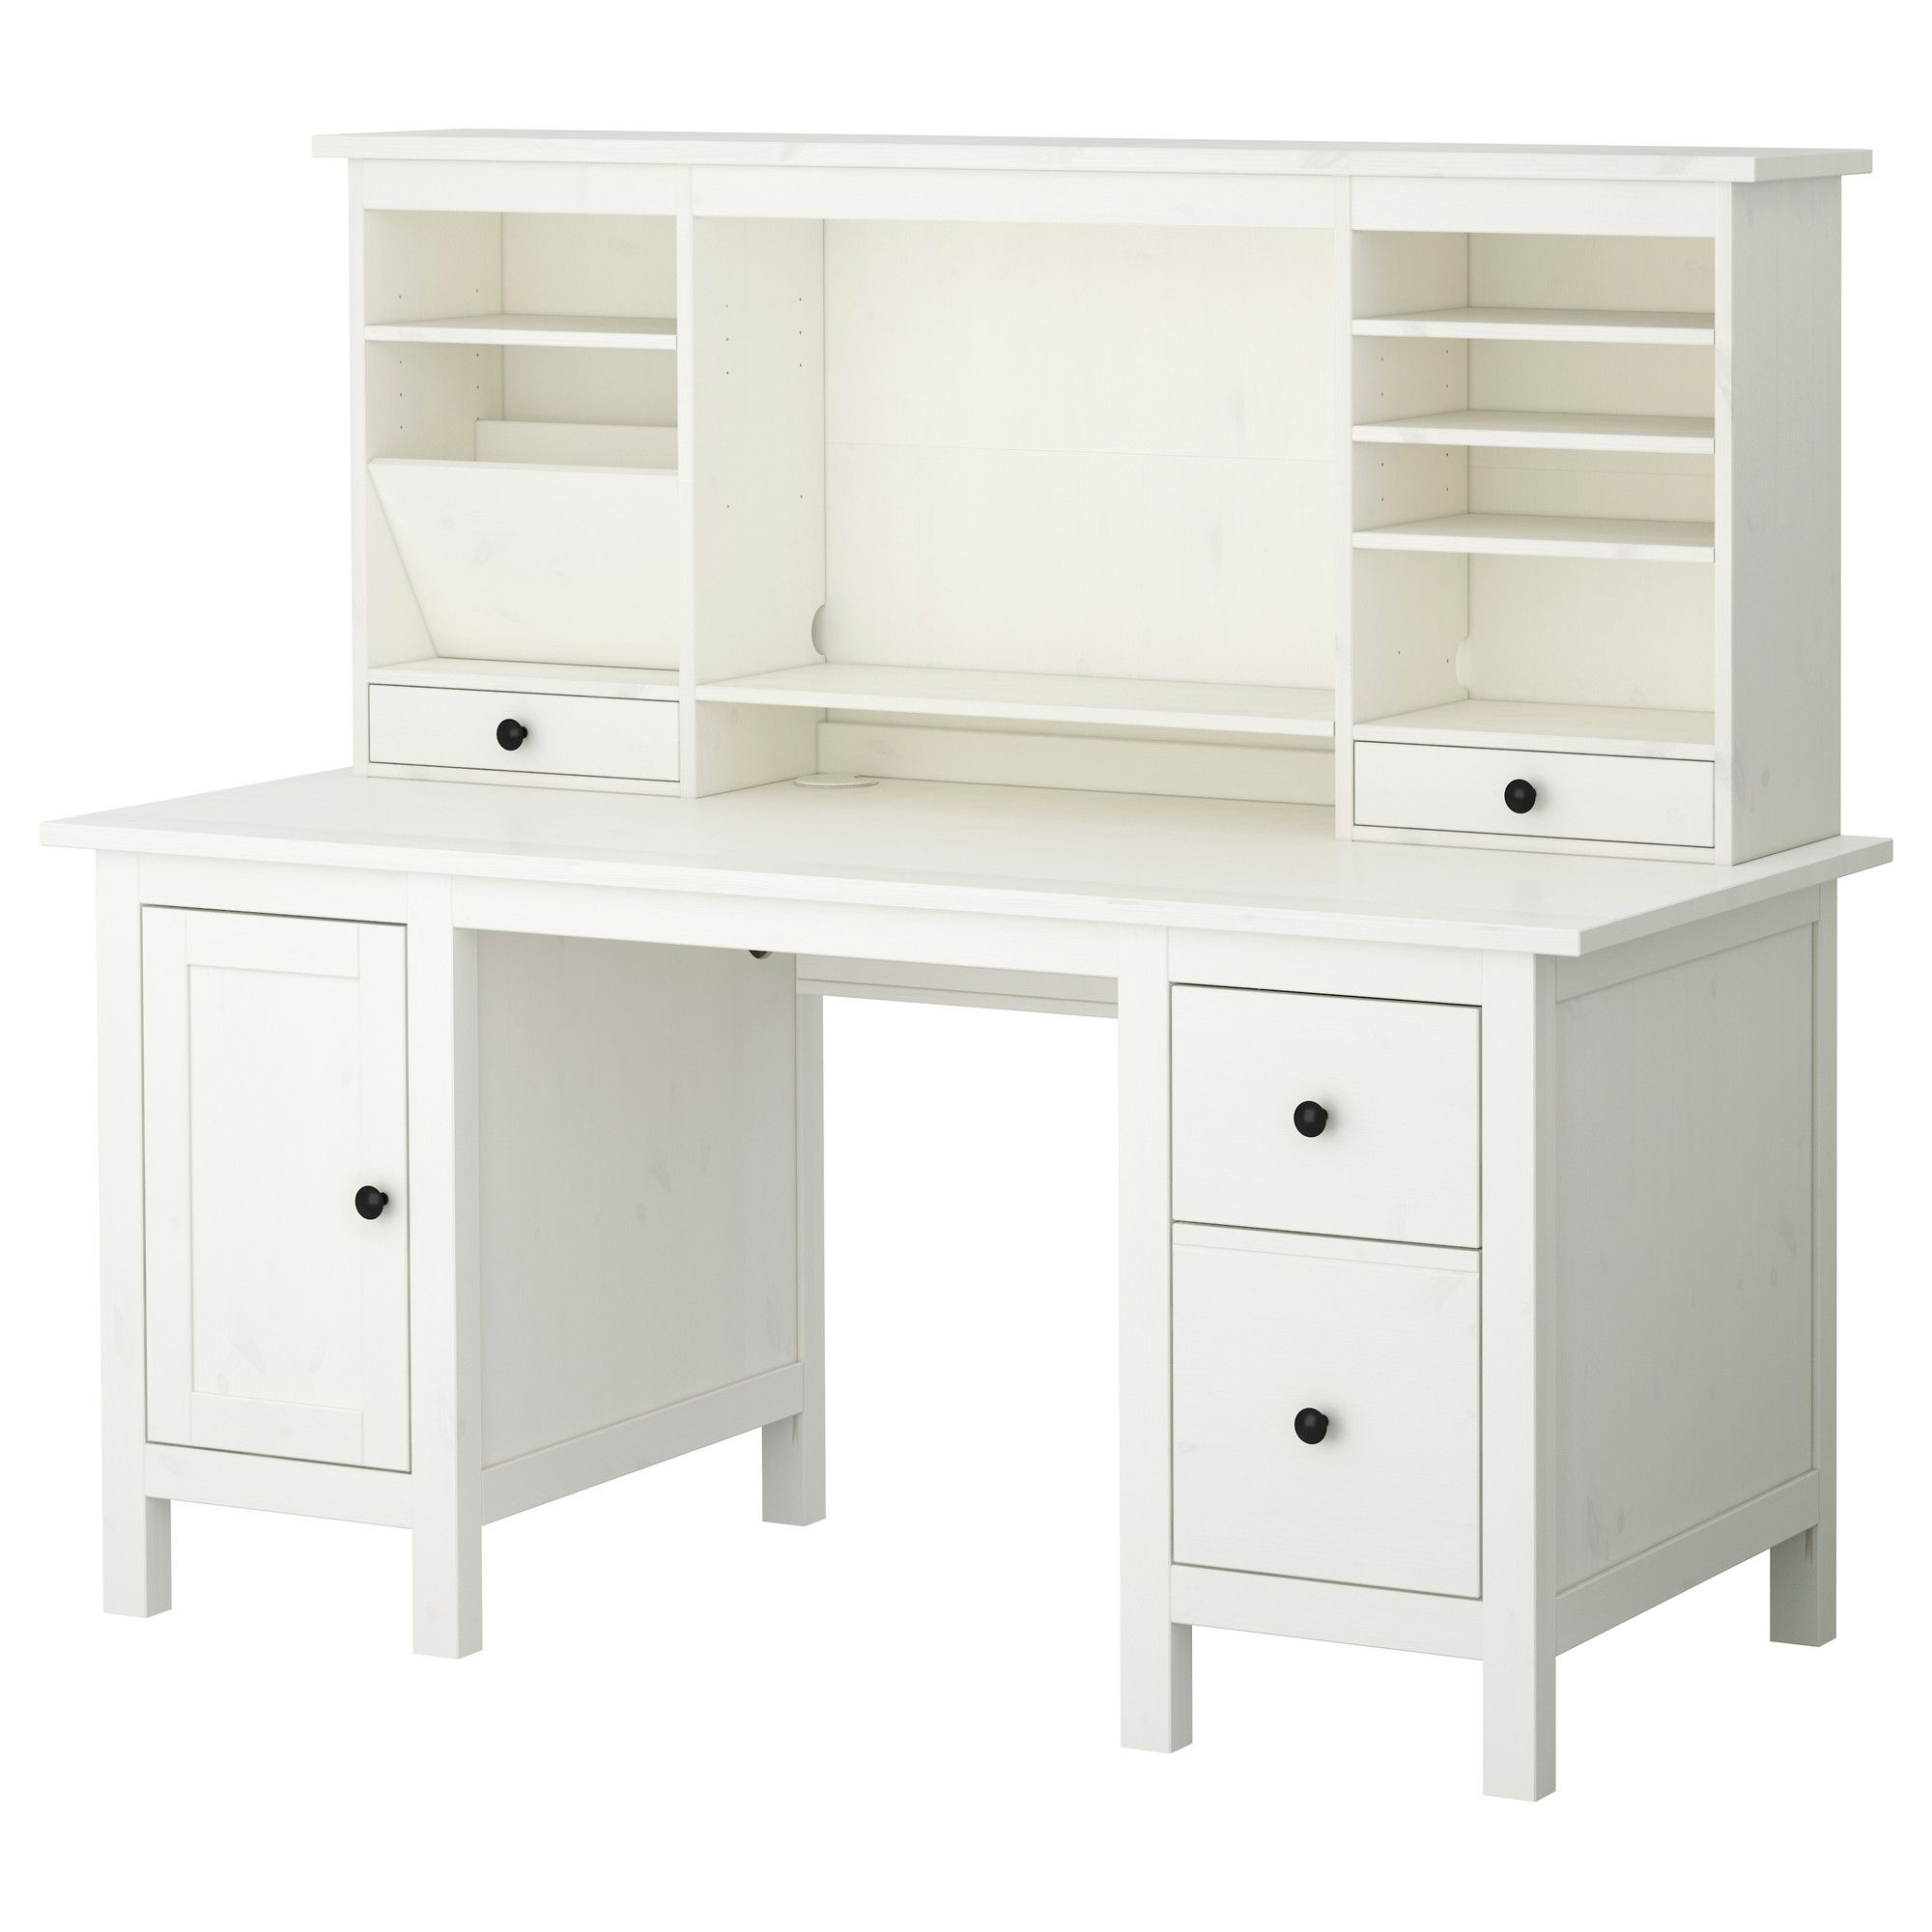 Office Desks White hemnes desk with add-on unit, white. desk -$279, hitch - $150